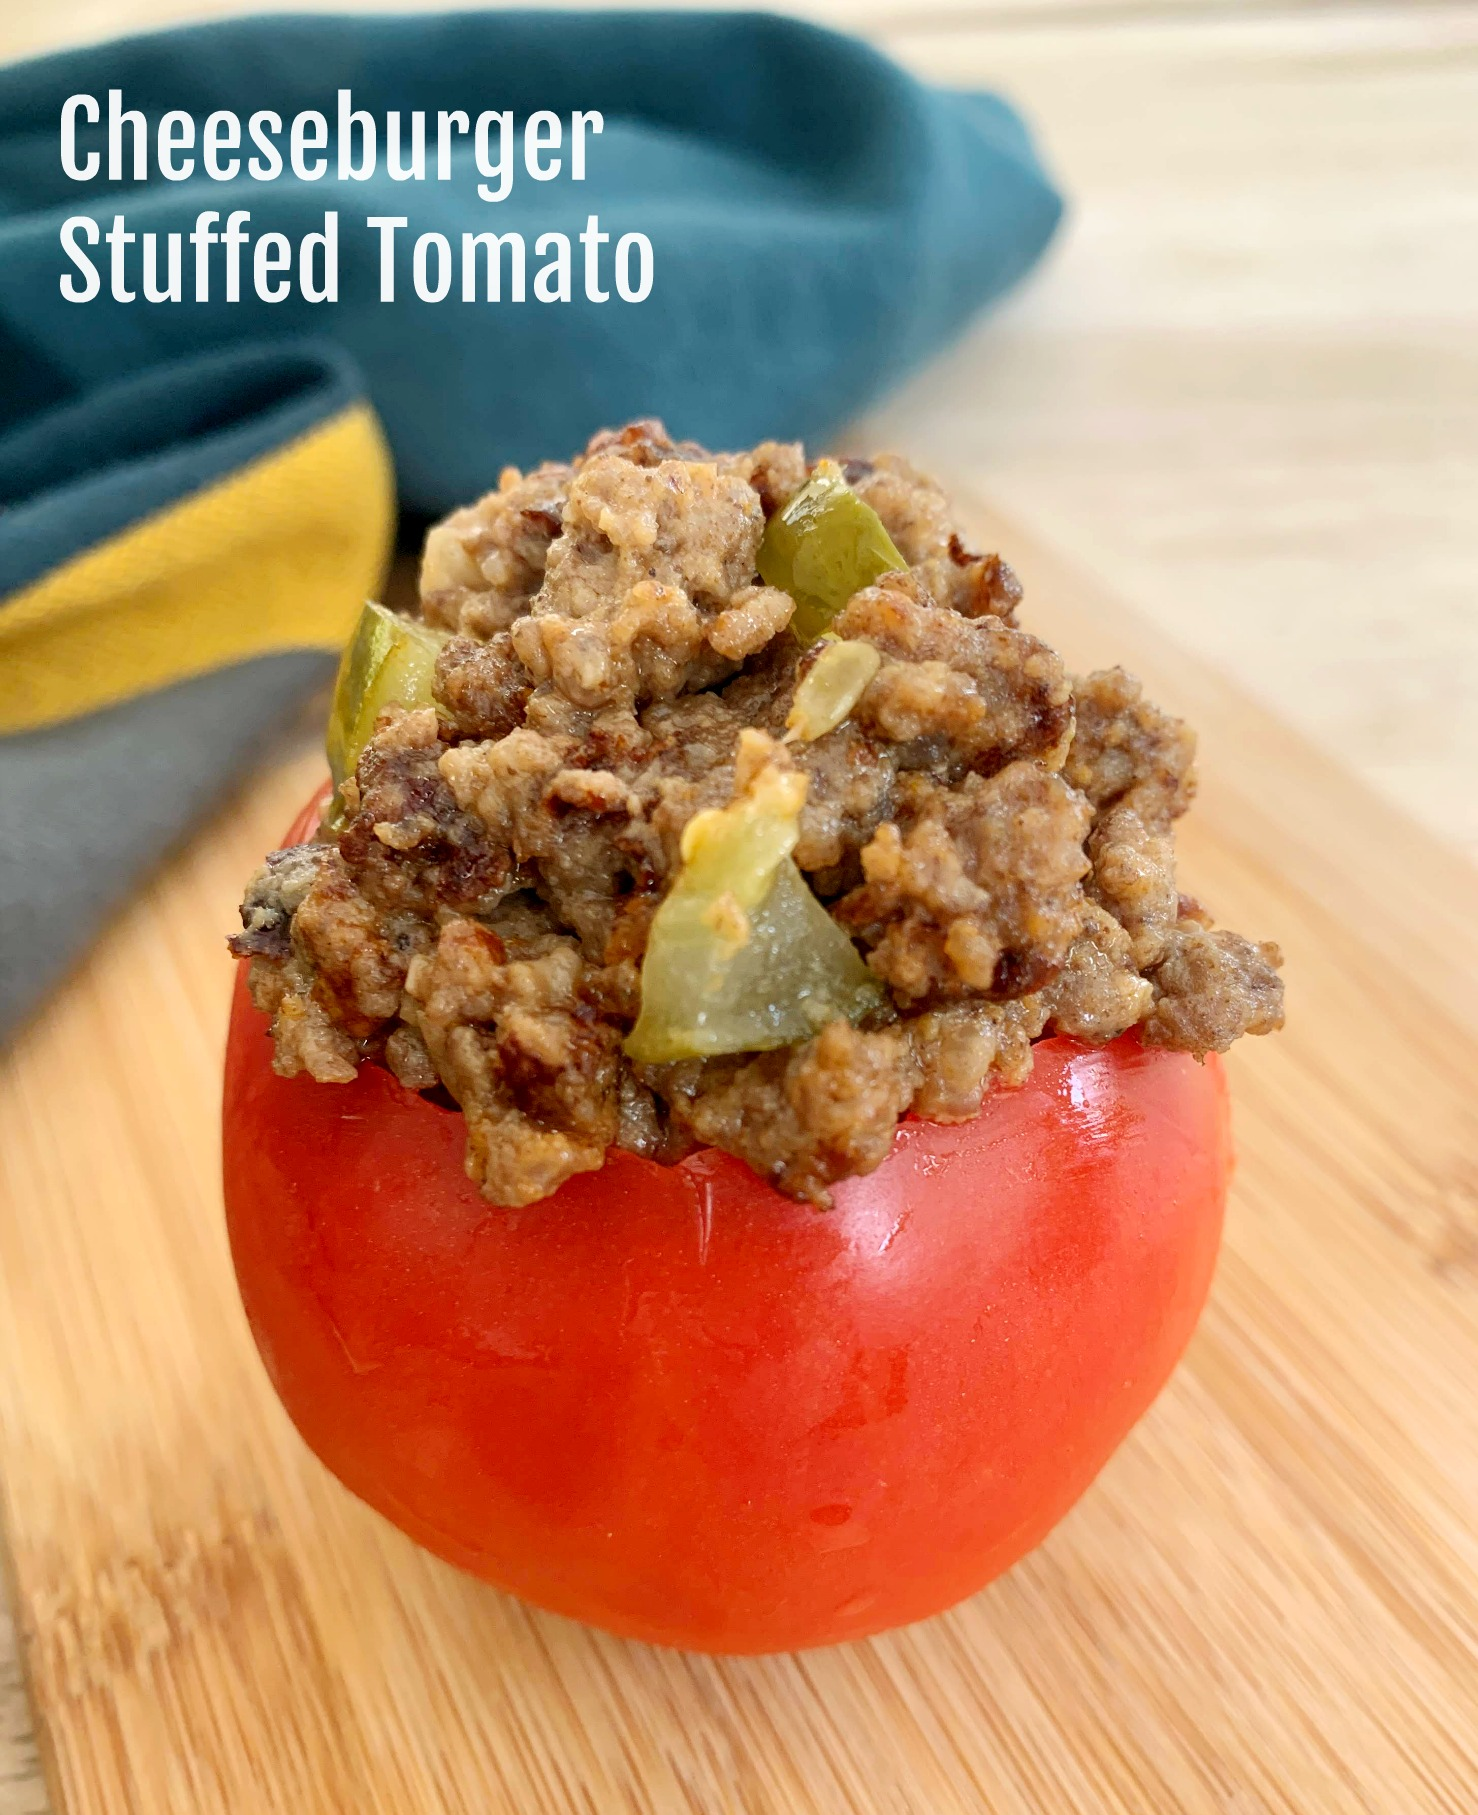 a tomato filled with cheeseburger mixture on a wooden cutting board